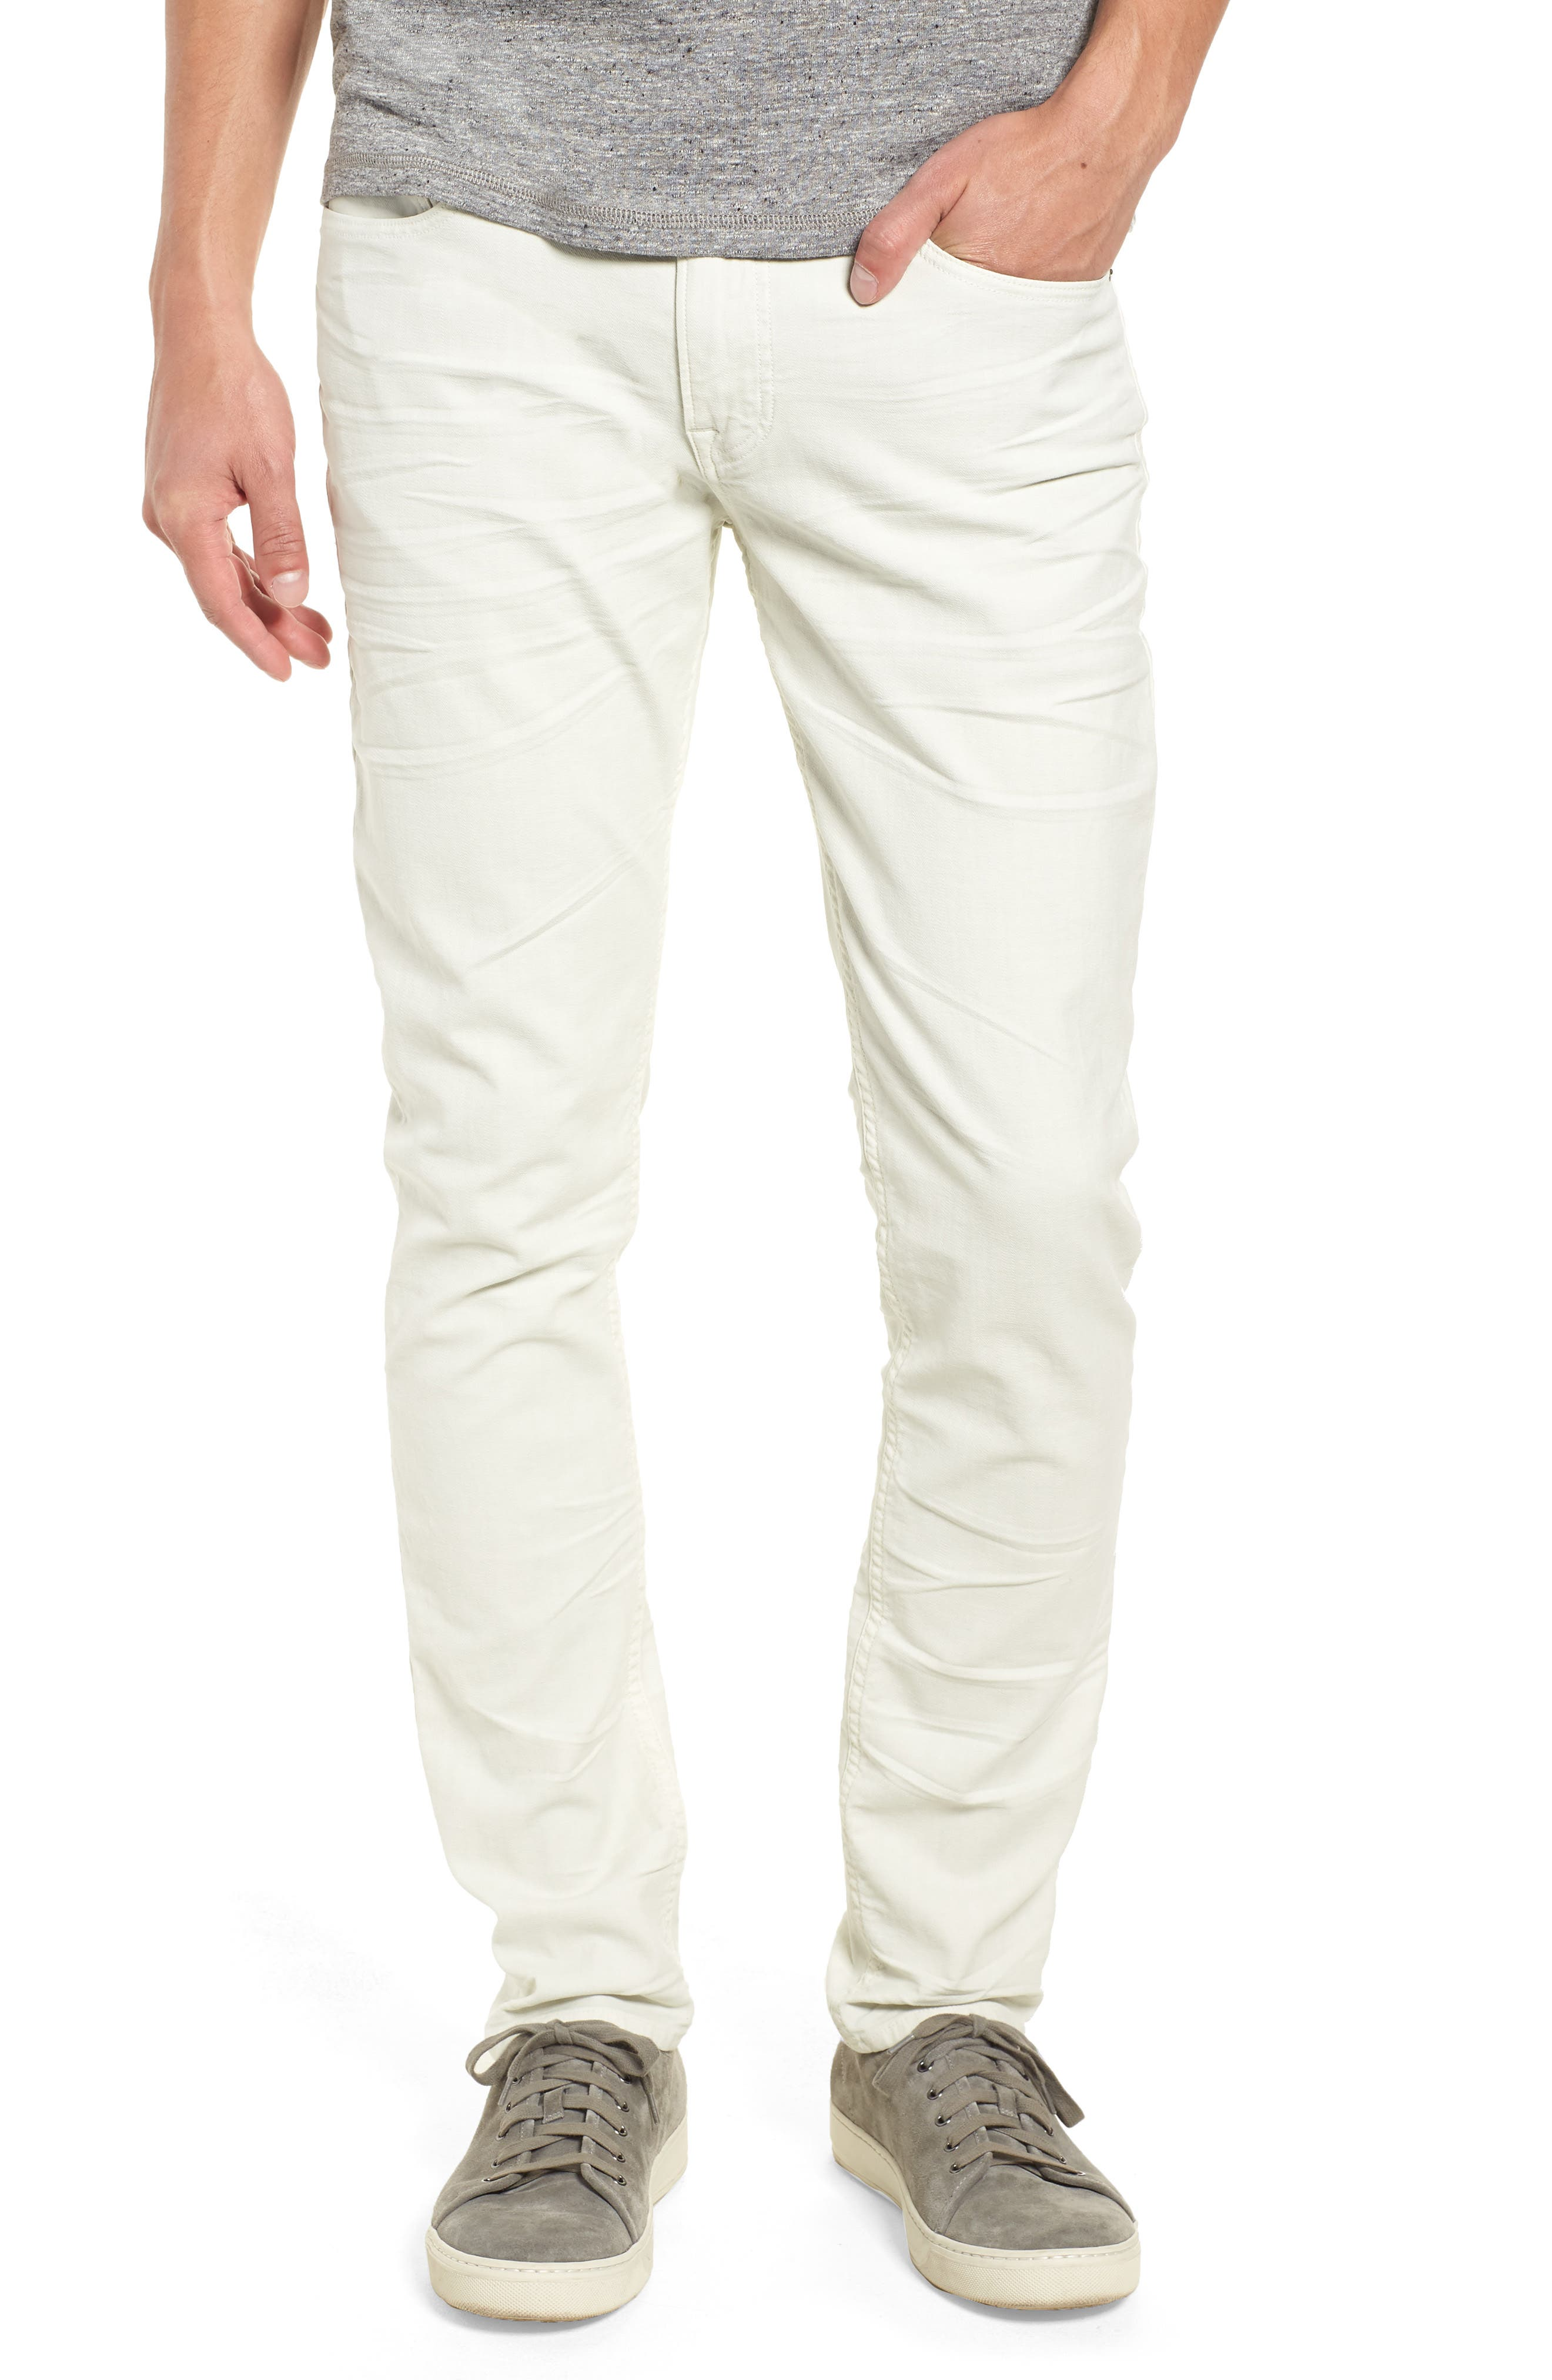 Hudson Axl Skinny Fit Jeans,                             Main thumbnail 1, color,                             DIRTY WHITE